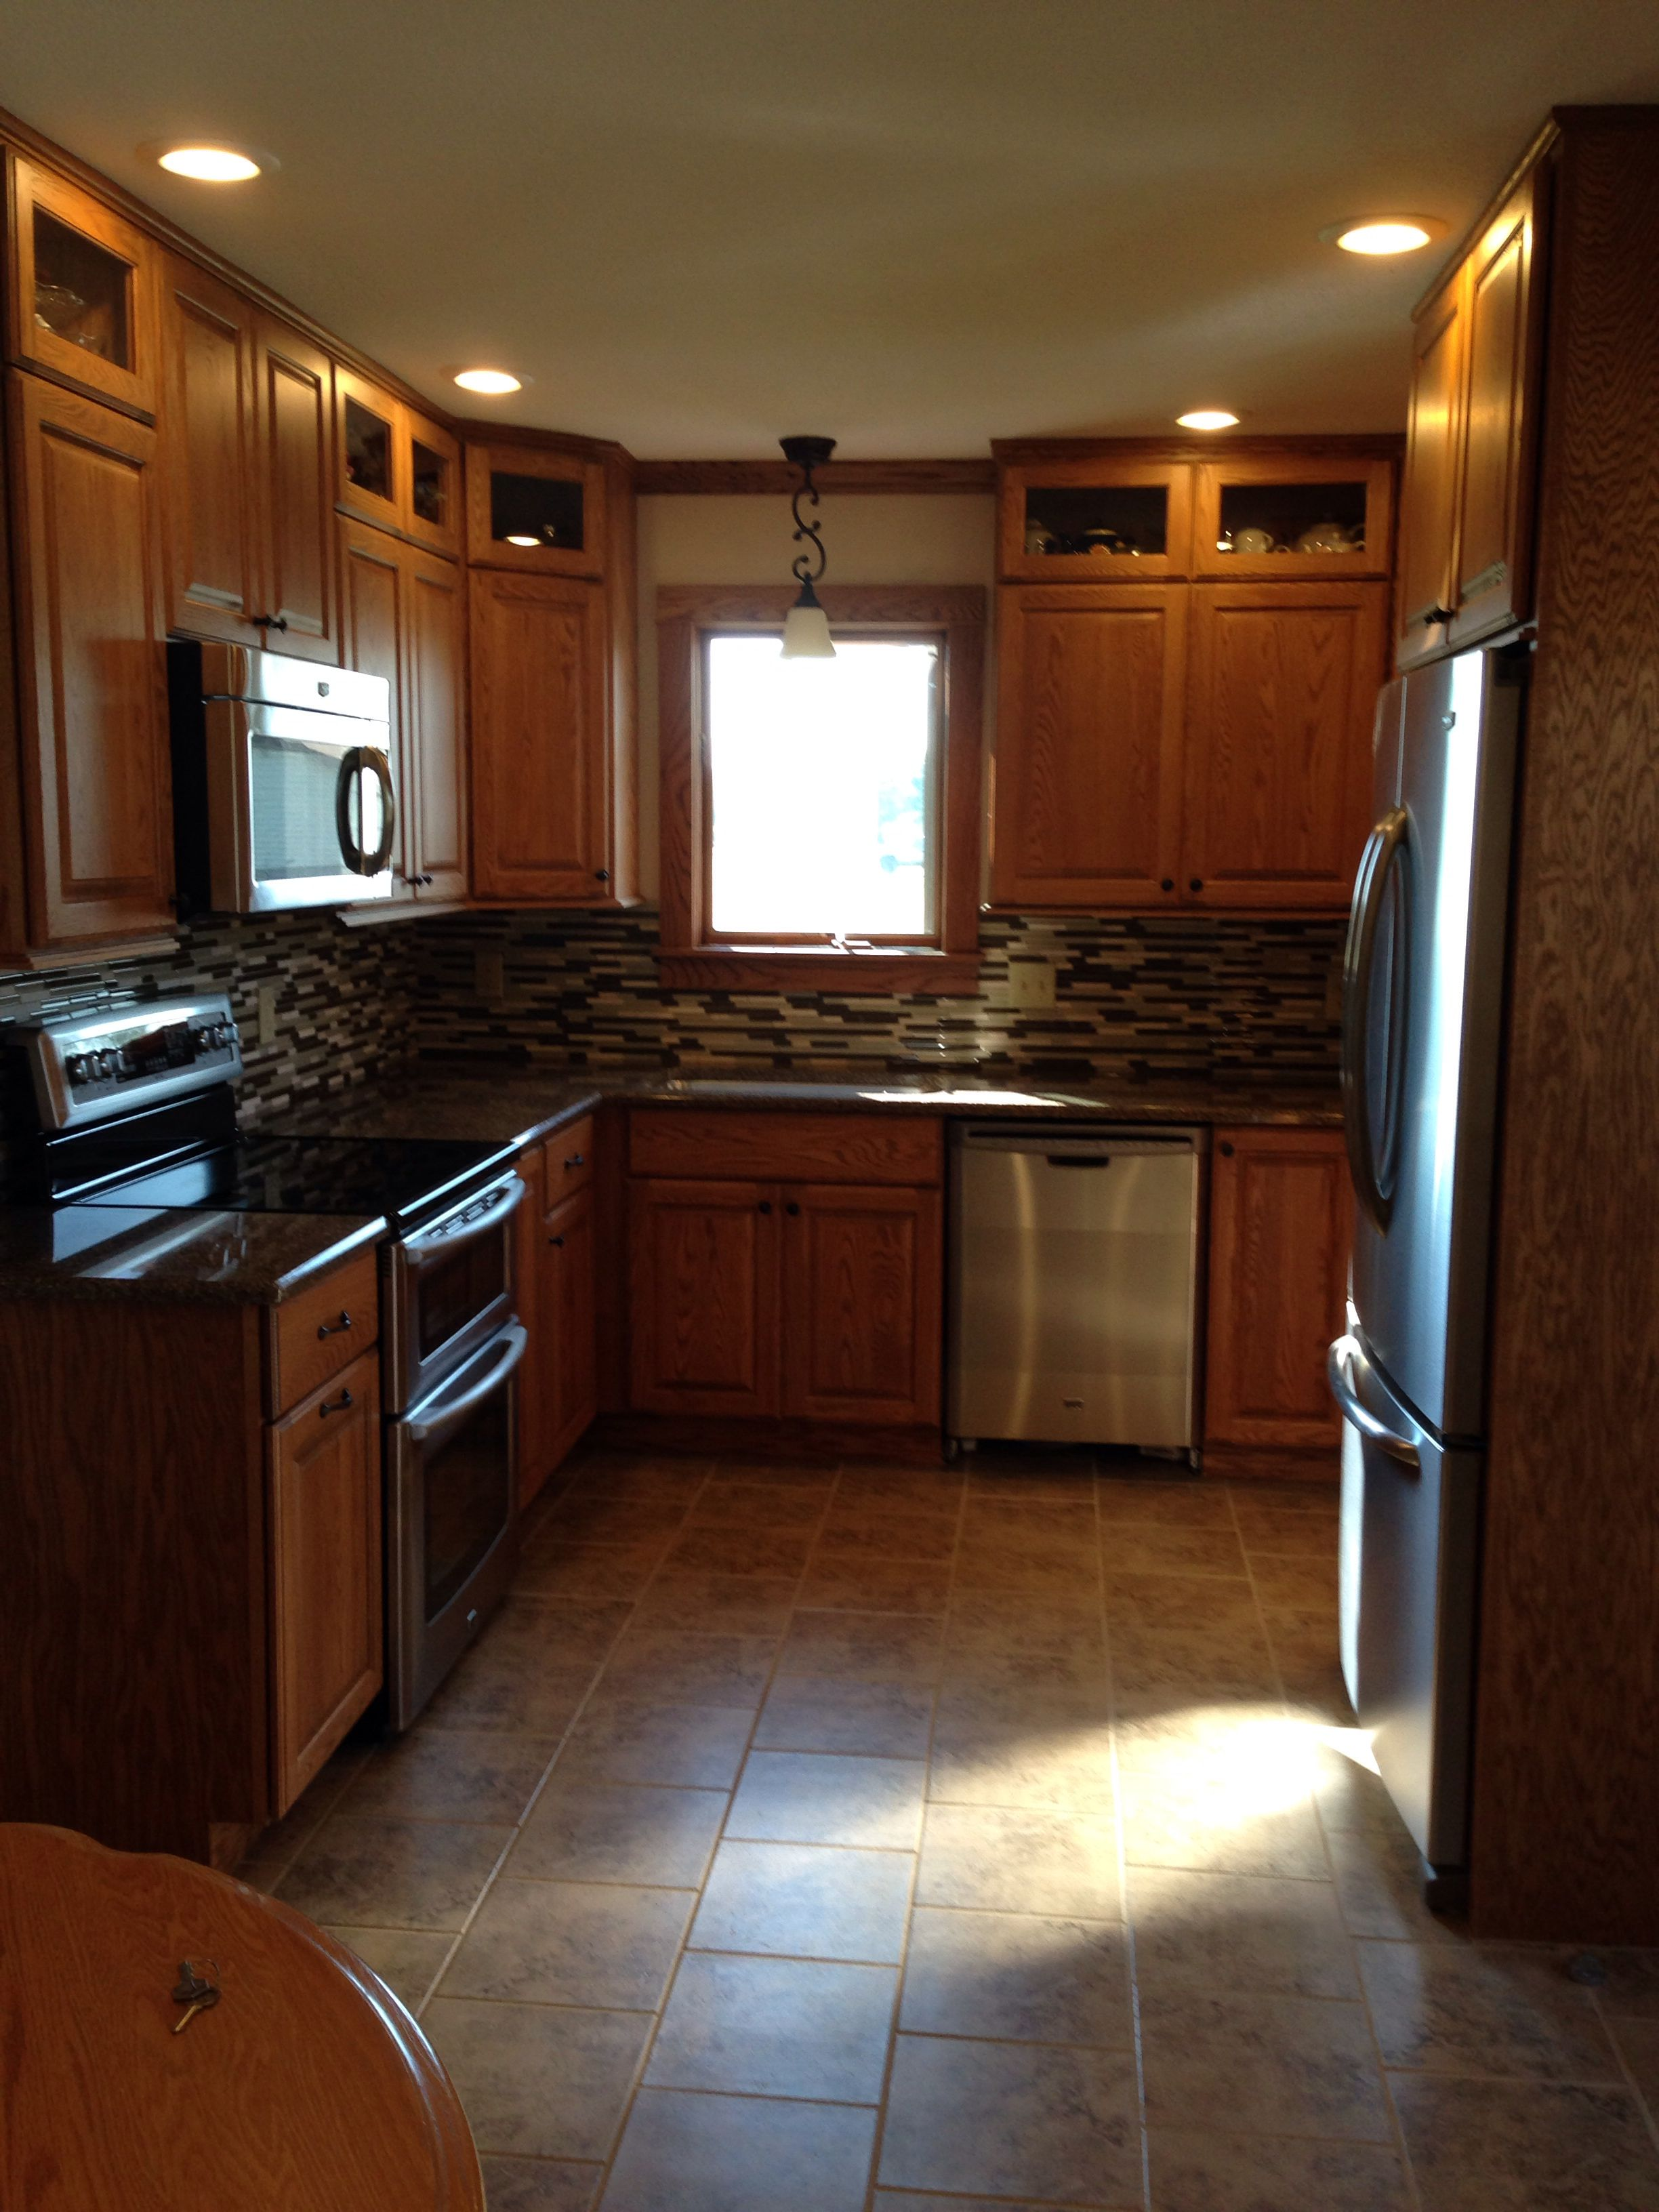 Beautiful oak cabinets with glass top for display and ...